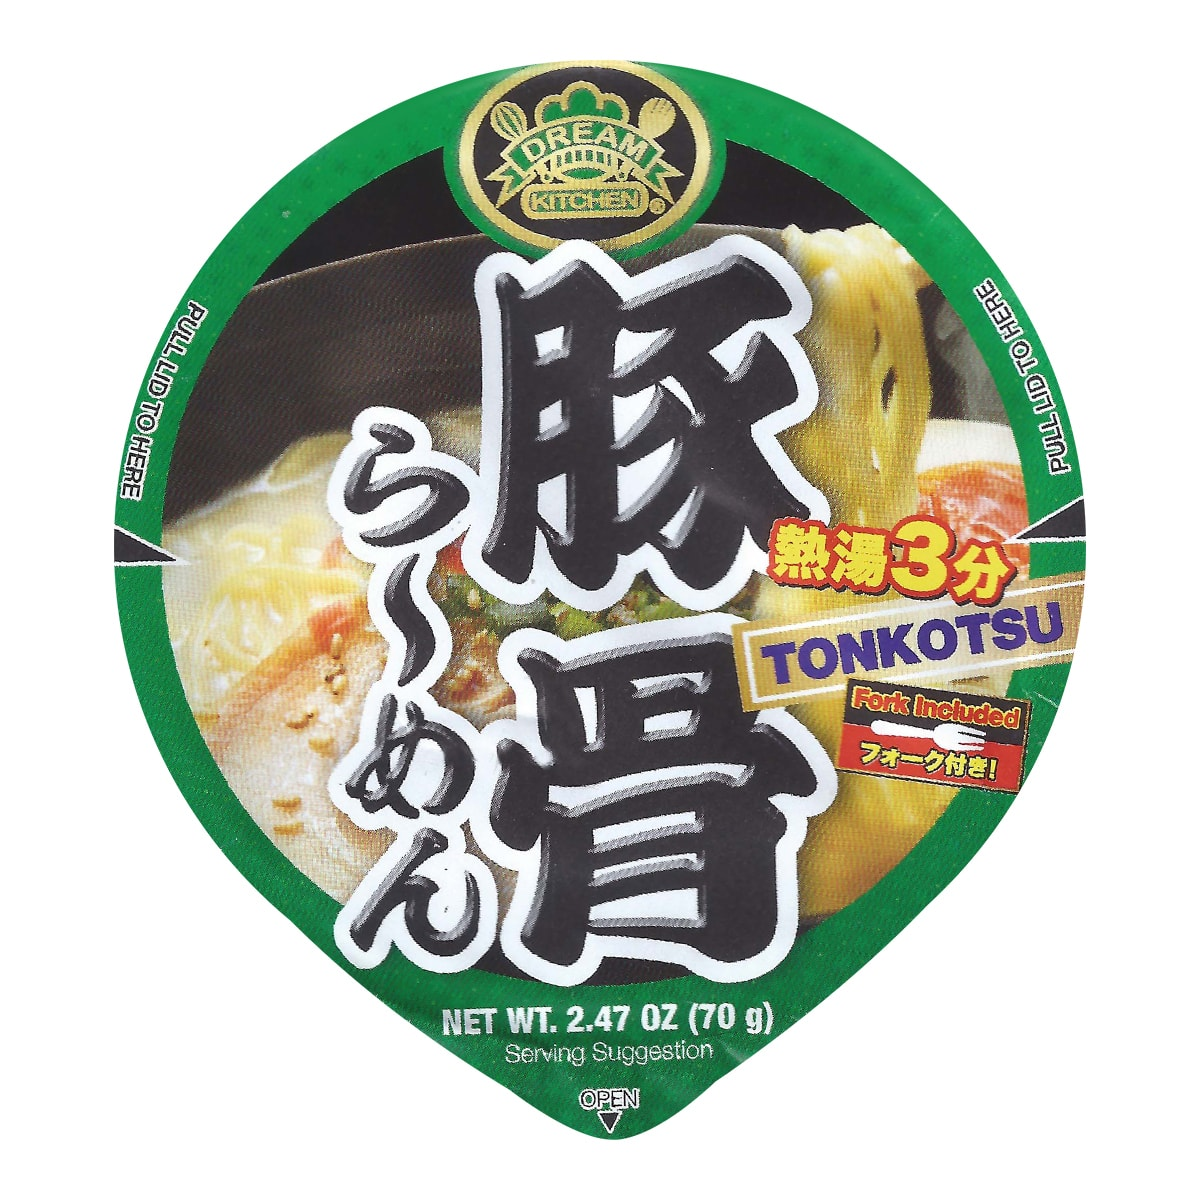 DREAM KITCHEN Tonkotsu Instant Noodle 70g